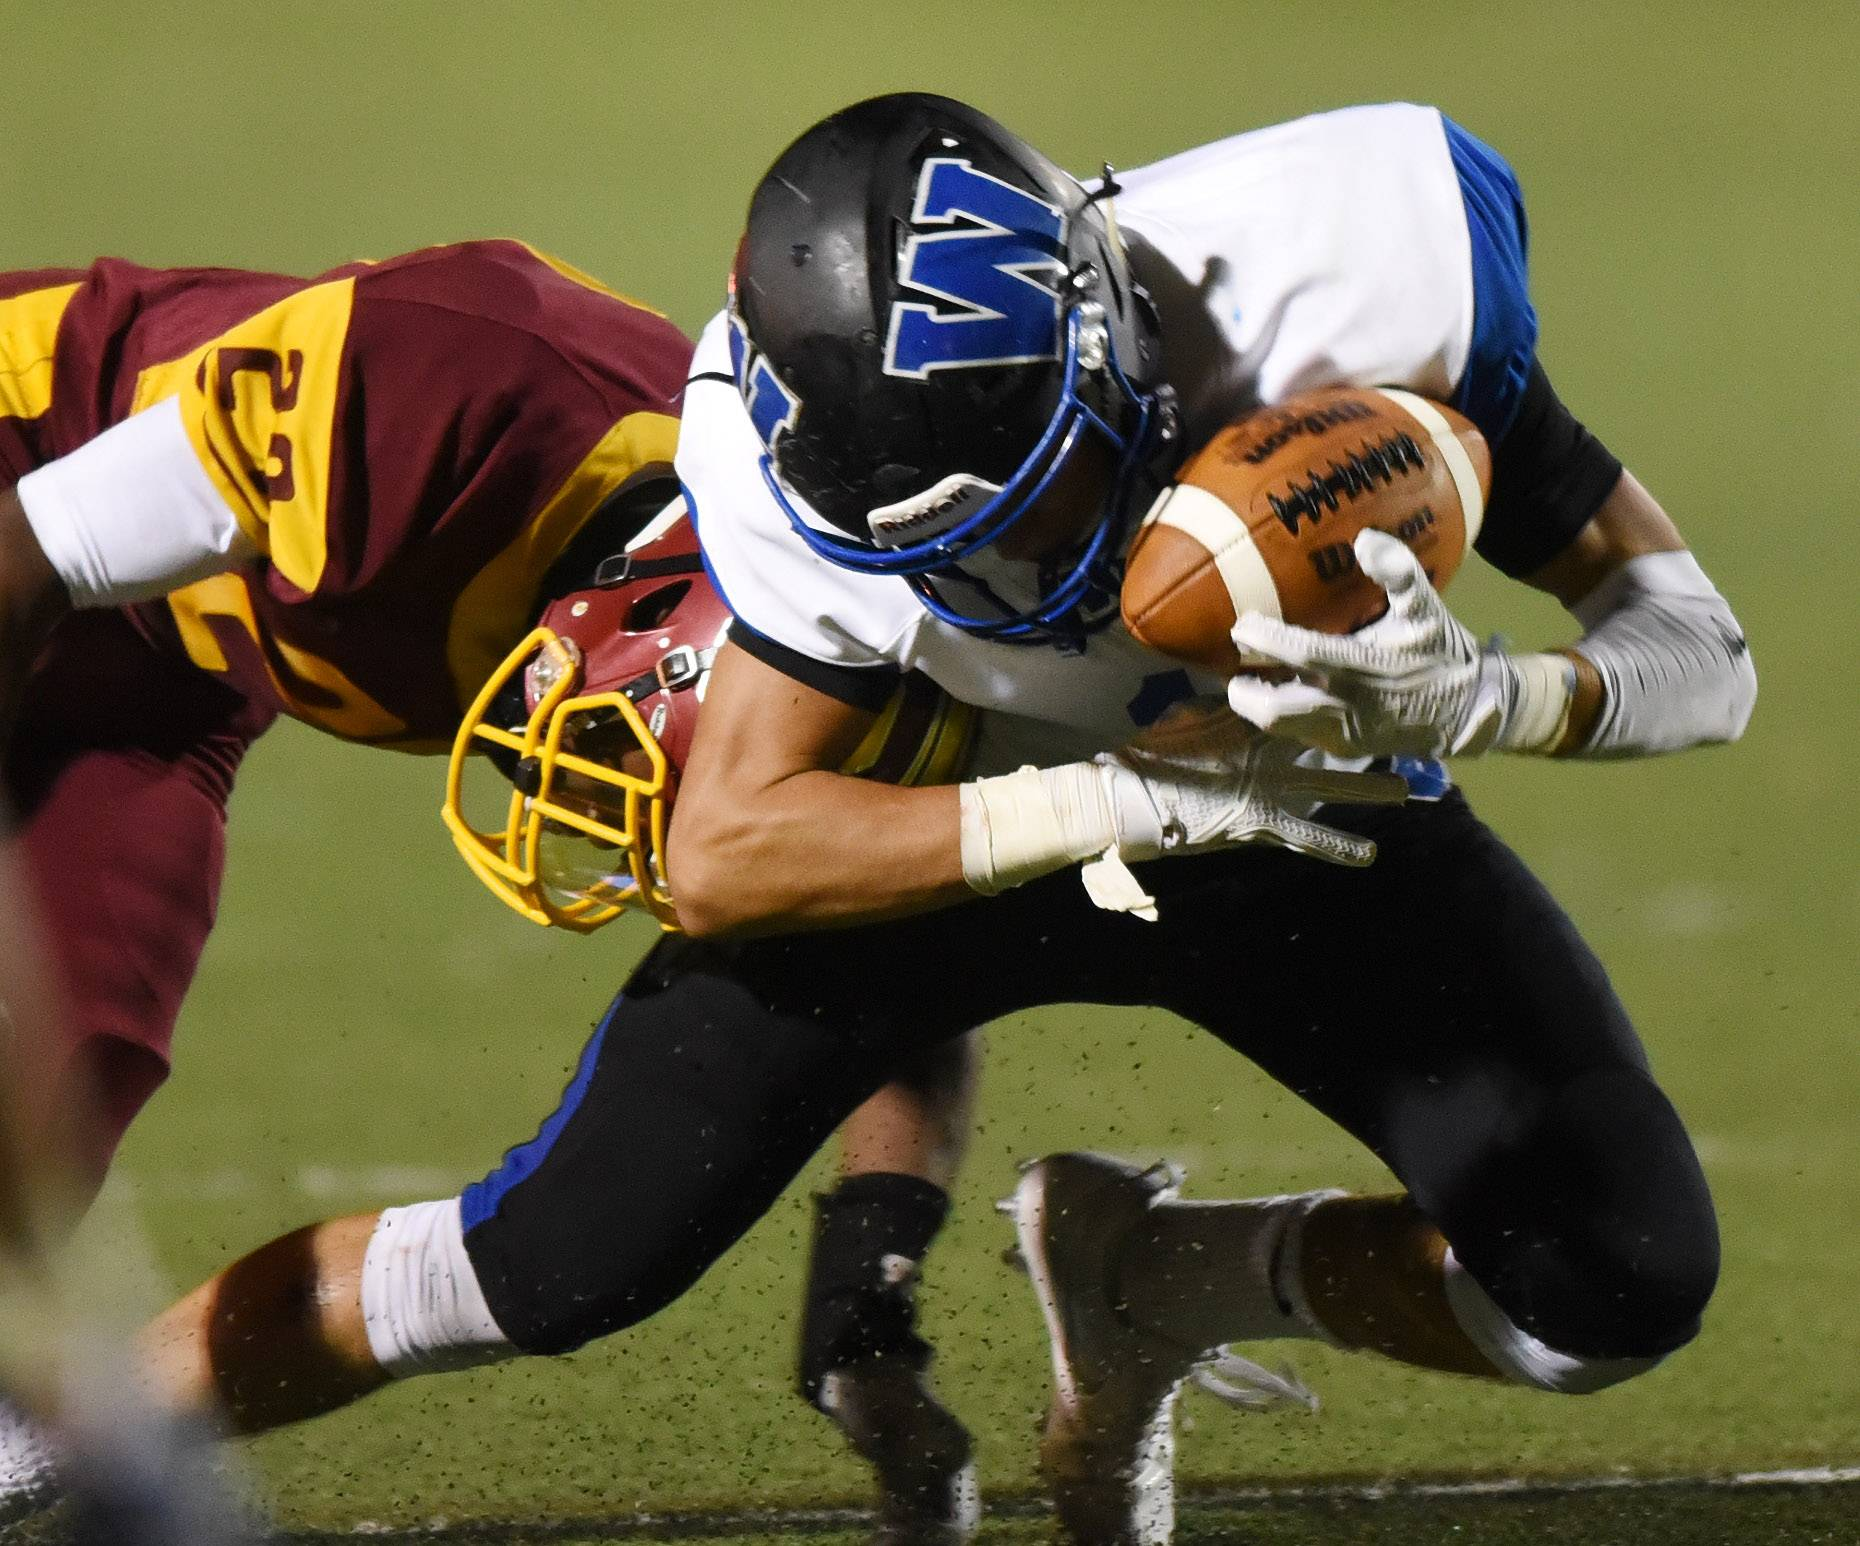 Wheeling's T.J. Best, here grabbing a pass in front of Schaumburg's Anthony Nix, made a big difference by excelling as a receiver this fall.